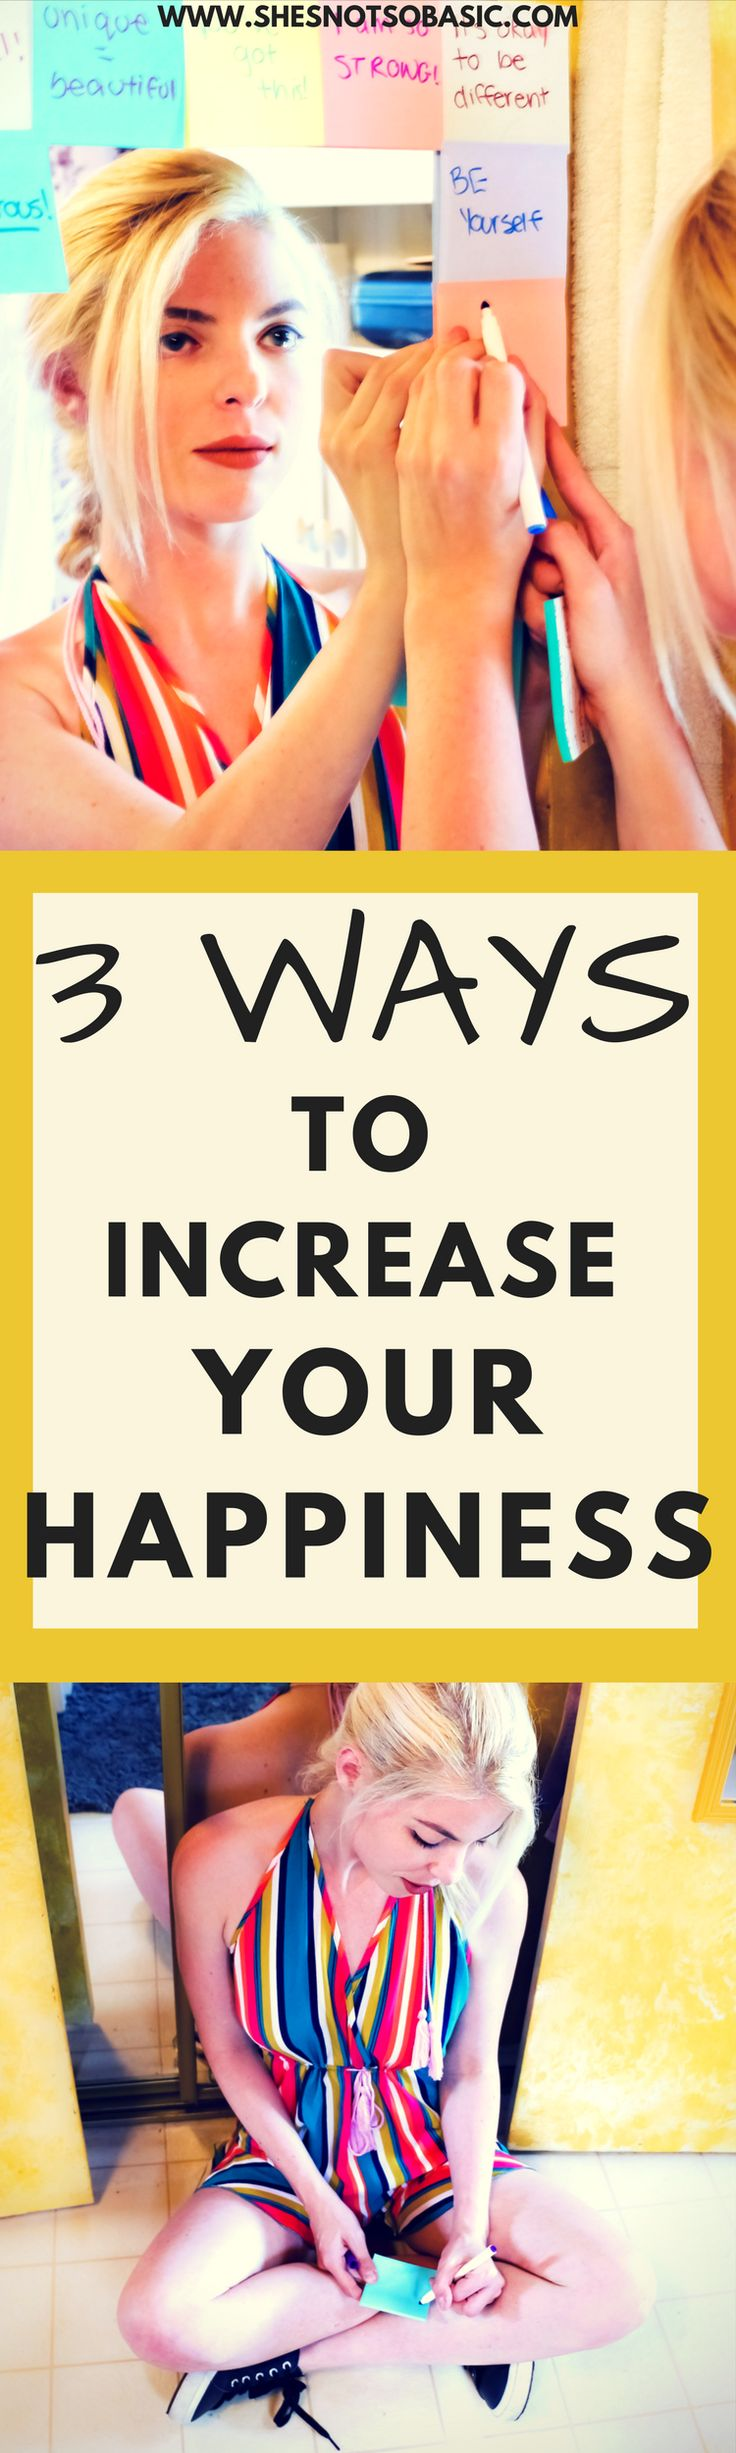 Daily Habits for Happiness, happy people, happiness habits, habits of happiness, habits of happy people, daily habits, how to feel happy, increase happiness, how to increase happiness, happiness tips, tips to increase happiness